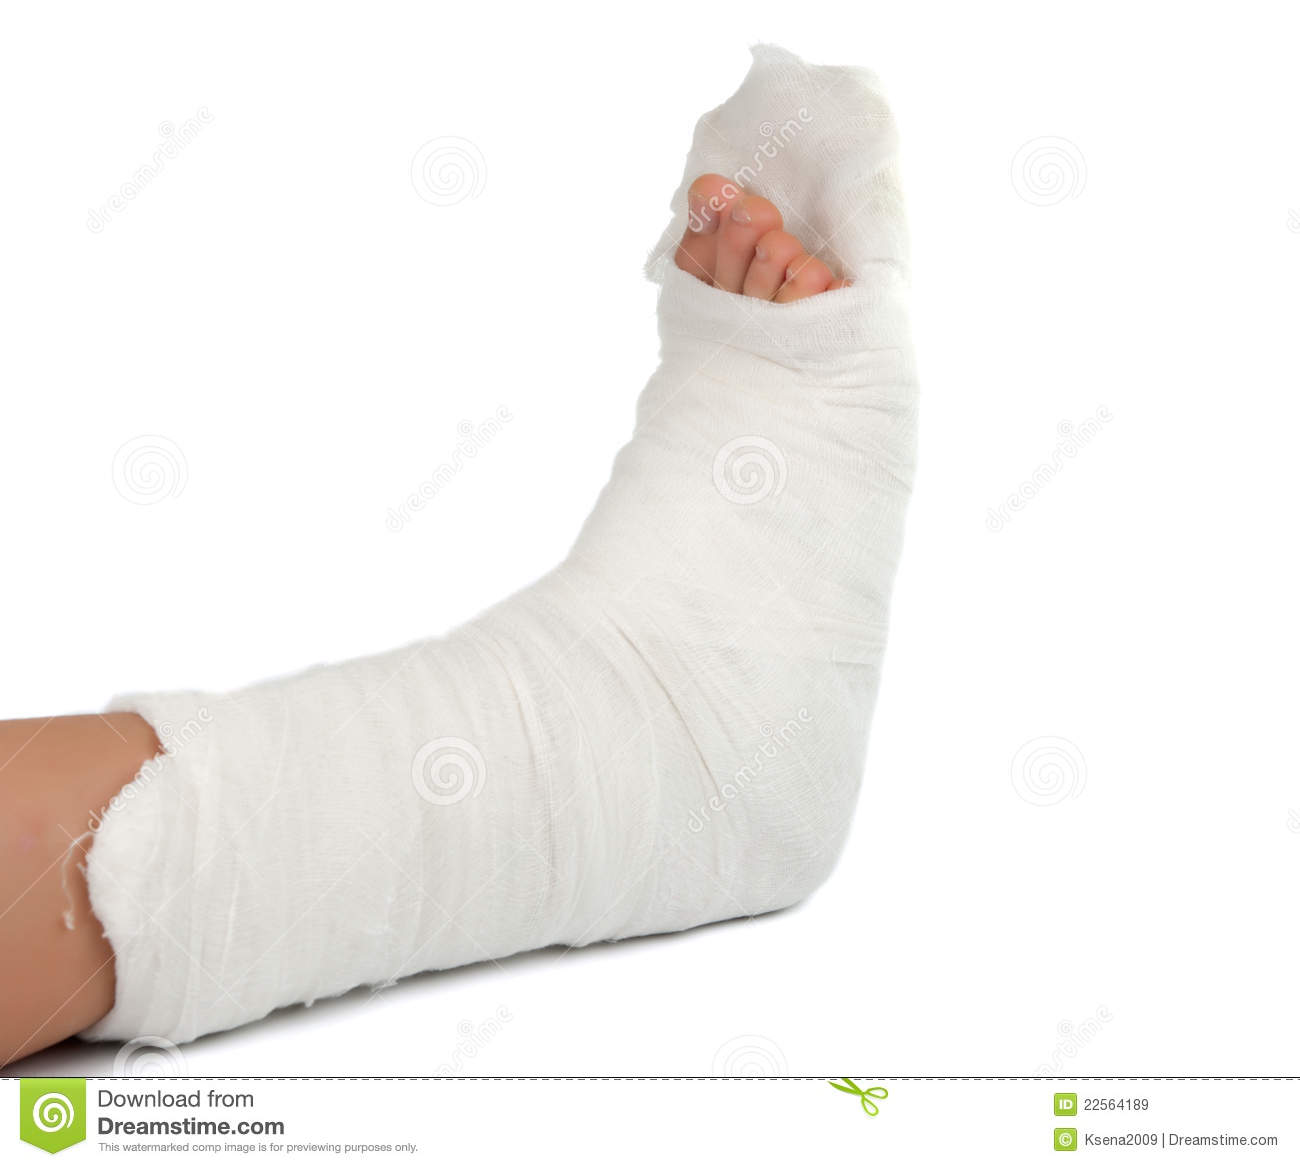 Leg In A Plaster Cast Stock Image. Image Of Achilles